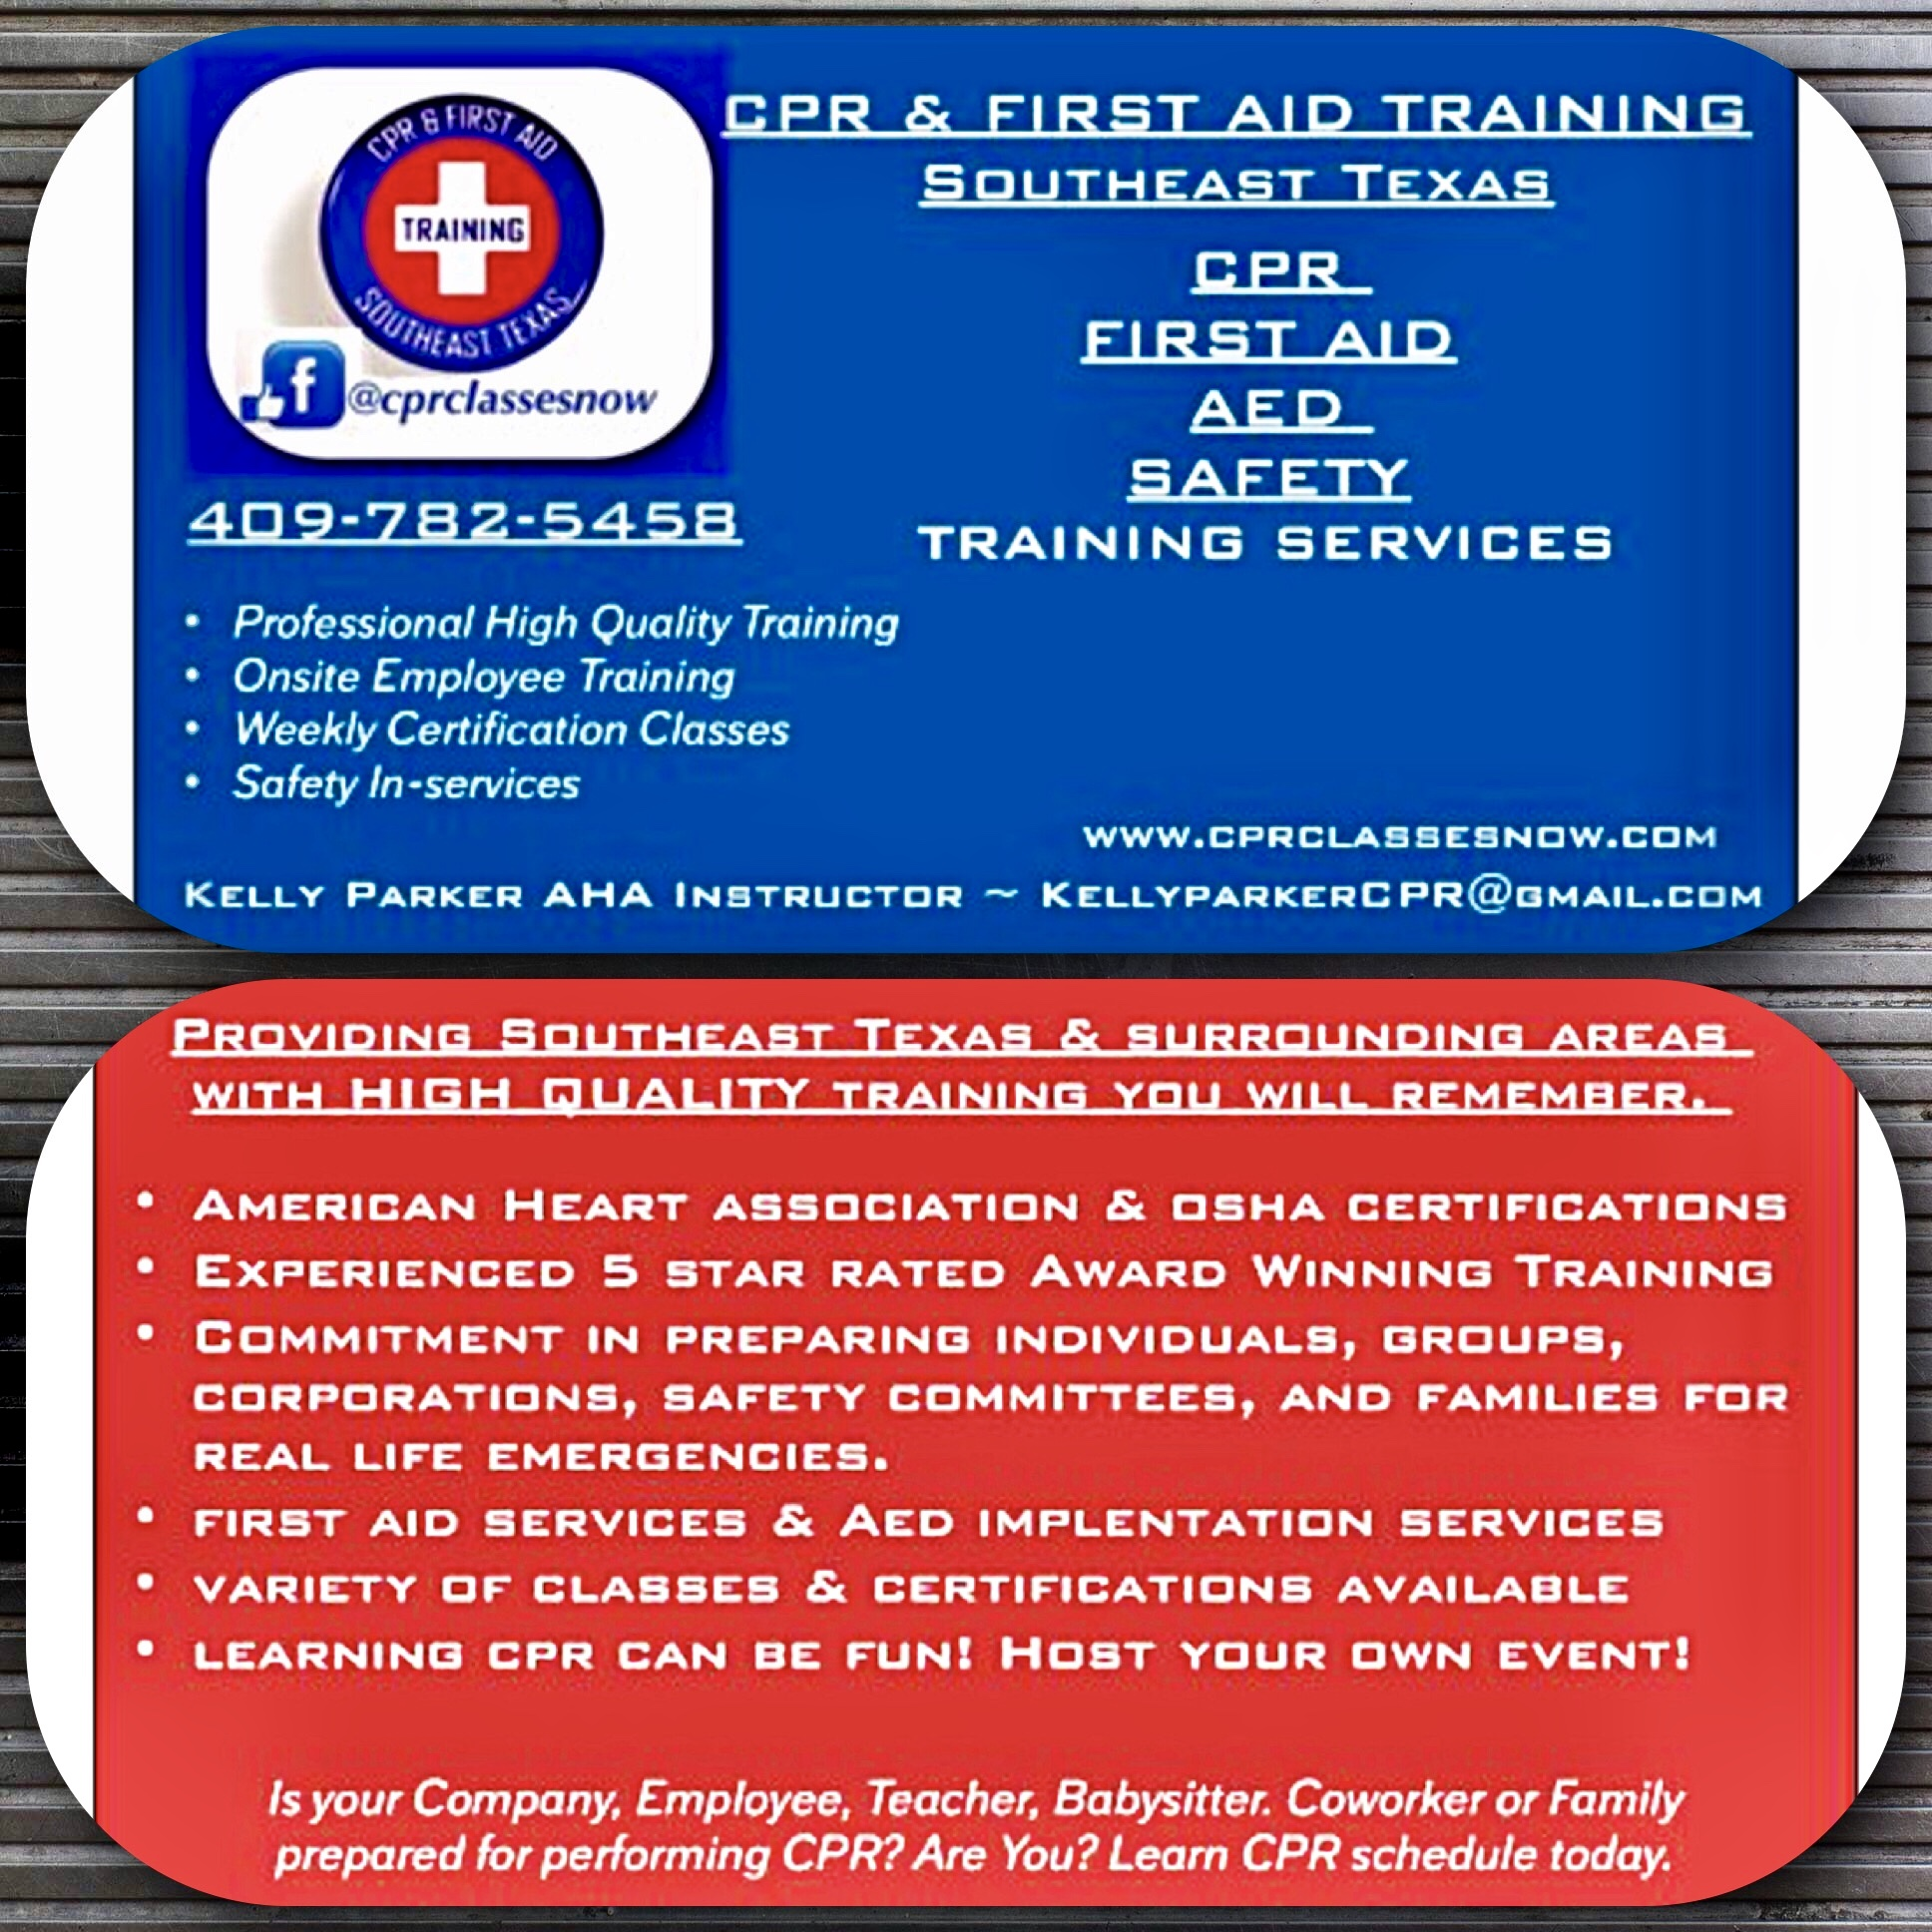 Is your workplace prepared for a cardiac emergency? Are you in need of an AED in-service? - We can prepare you and your workplace at your convenience.